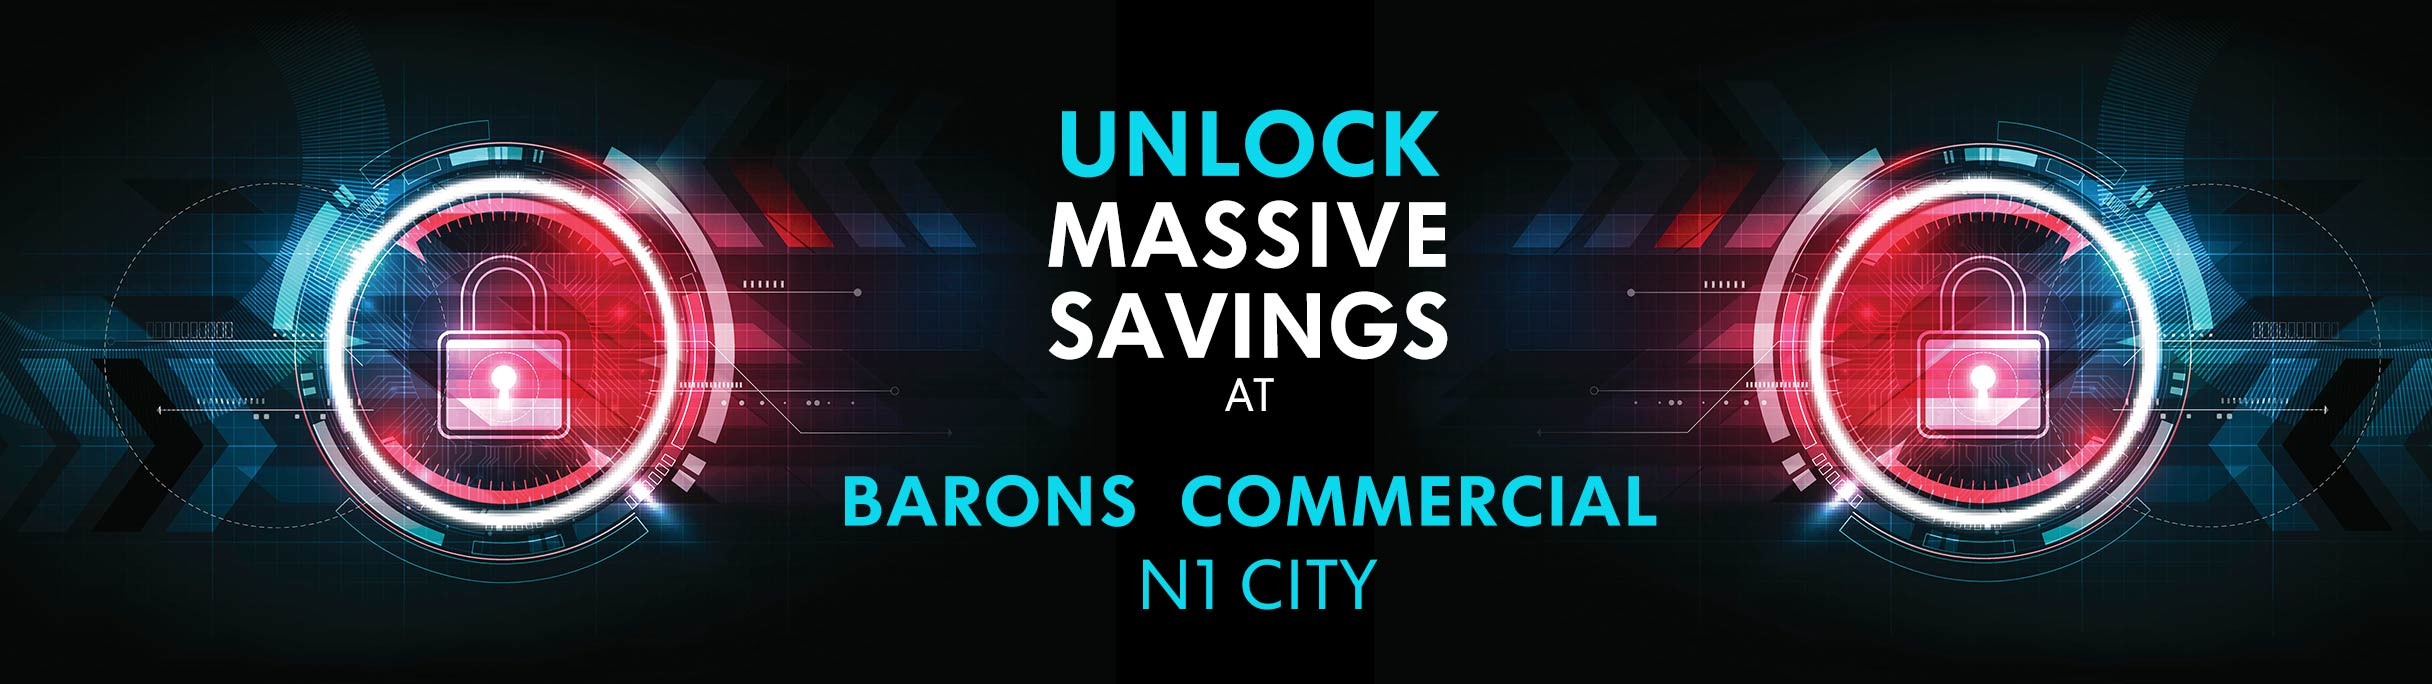 Massive savings at Barons Commercial